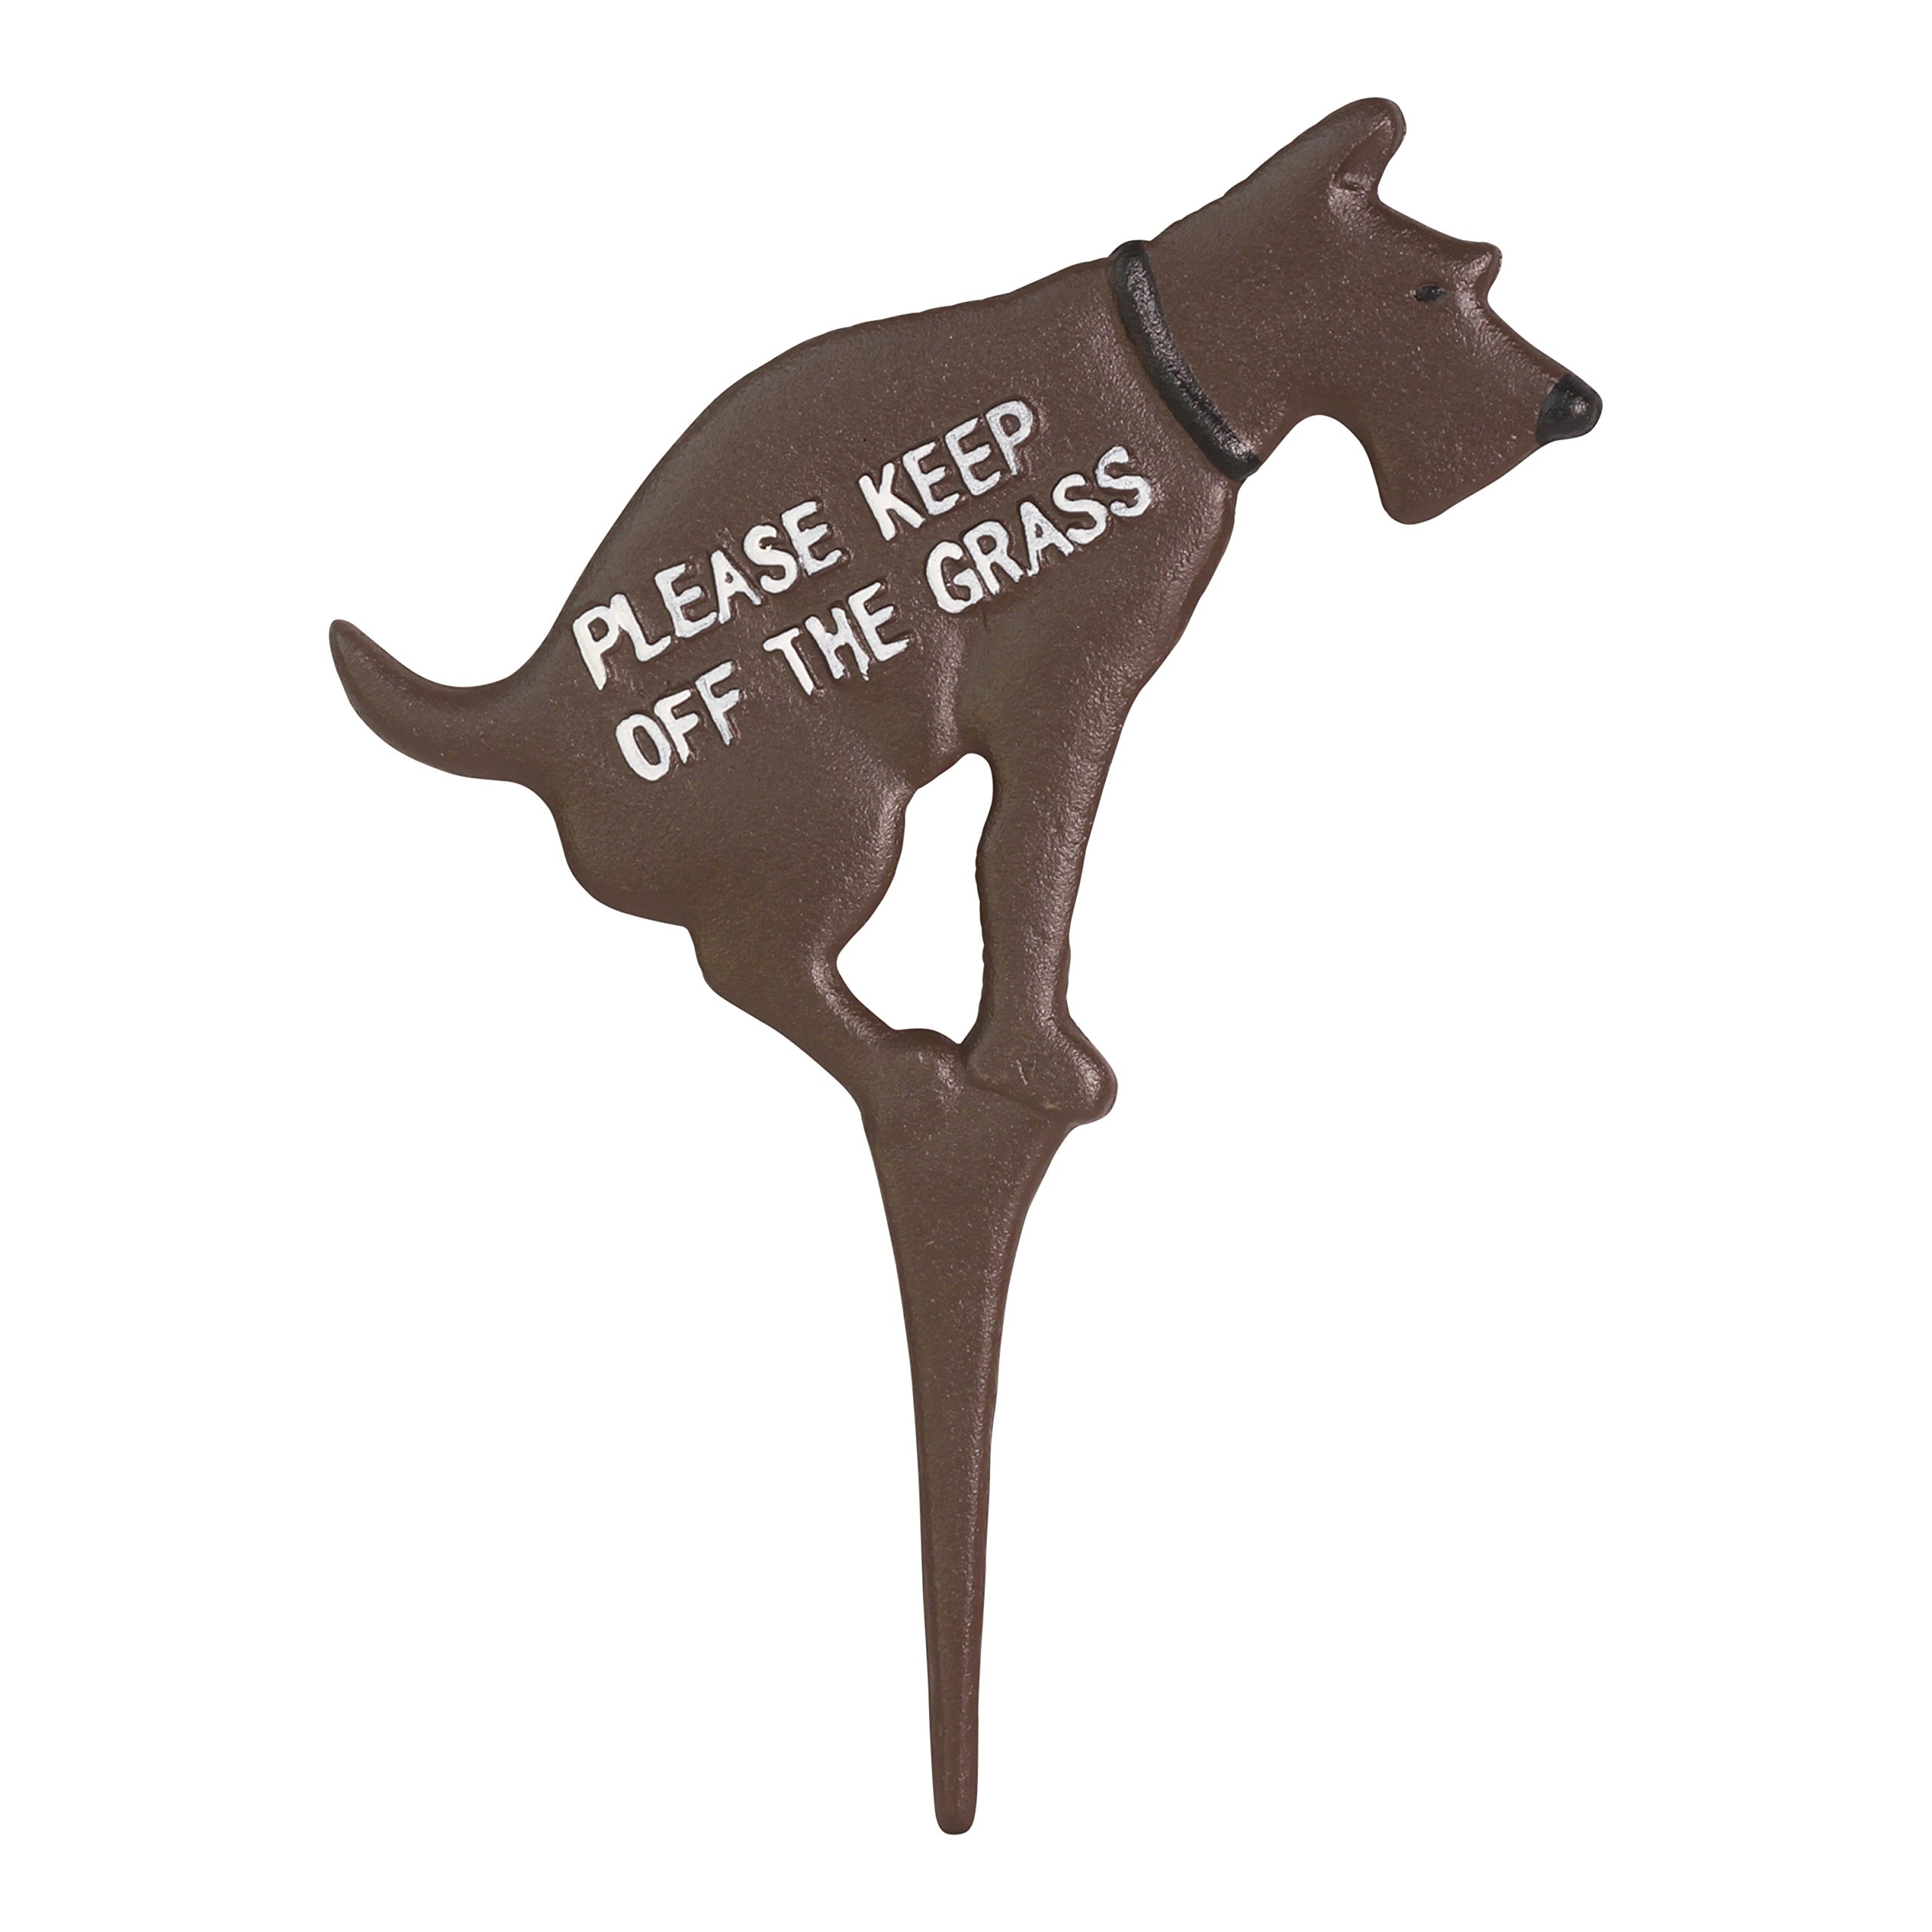 Keep Dog Off The Grass Yard Sign No Pooping Large 8.5'' x 12'' Solid Cast Iron Painted on Both Sides (Brown with White Paint)